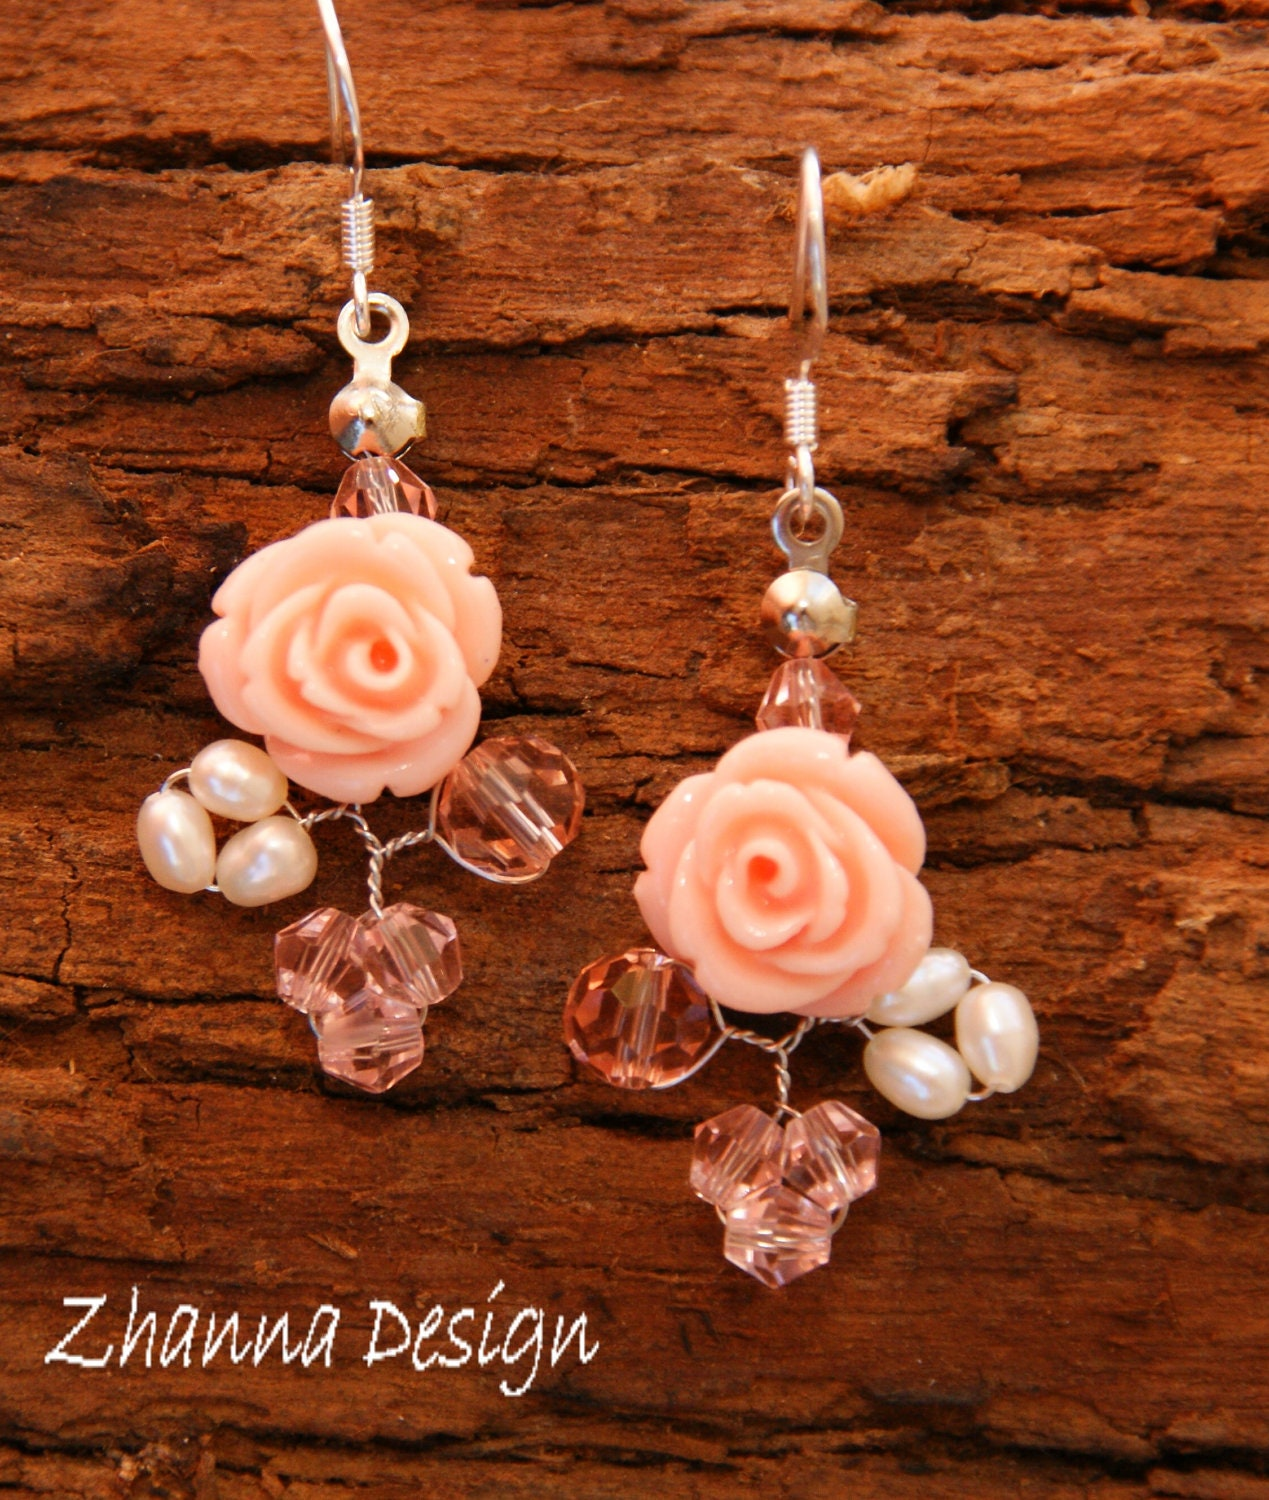 Pink coral roses,swarovski crystals,freshwater perls Earrings handmade by Zhanna Design.